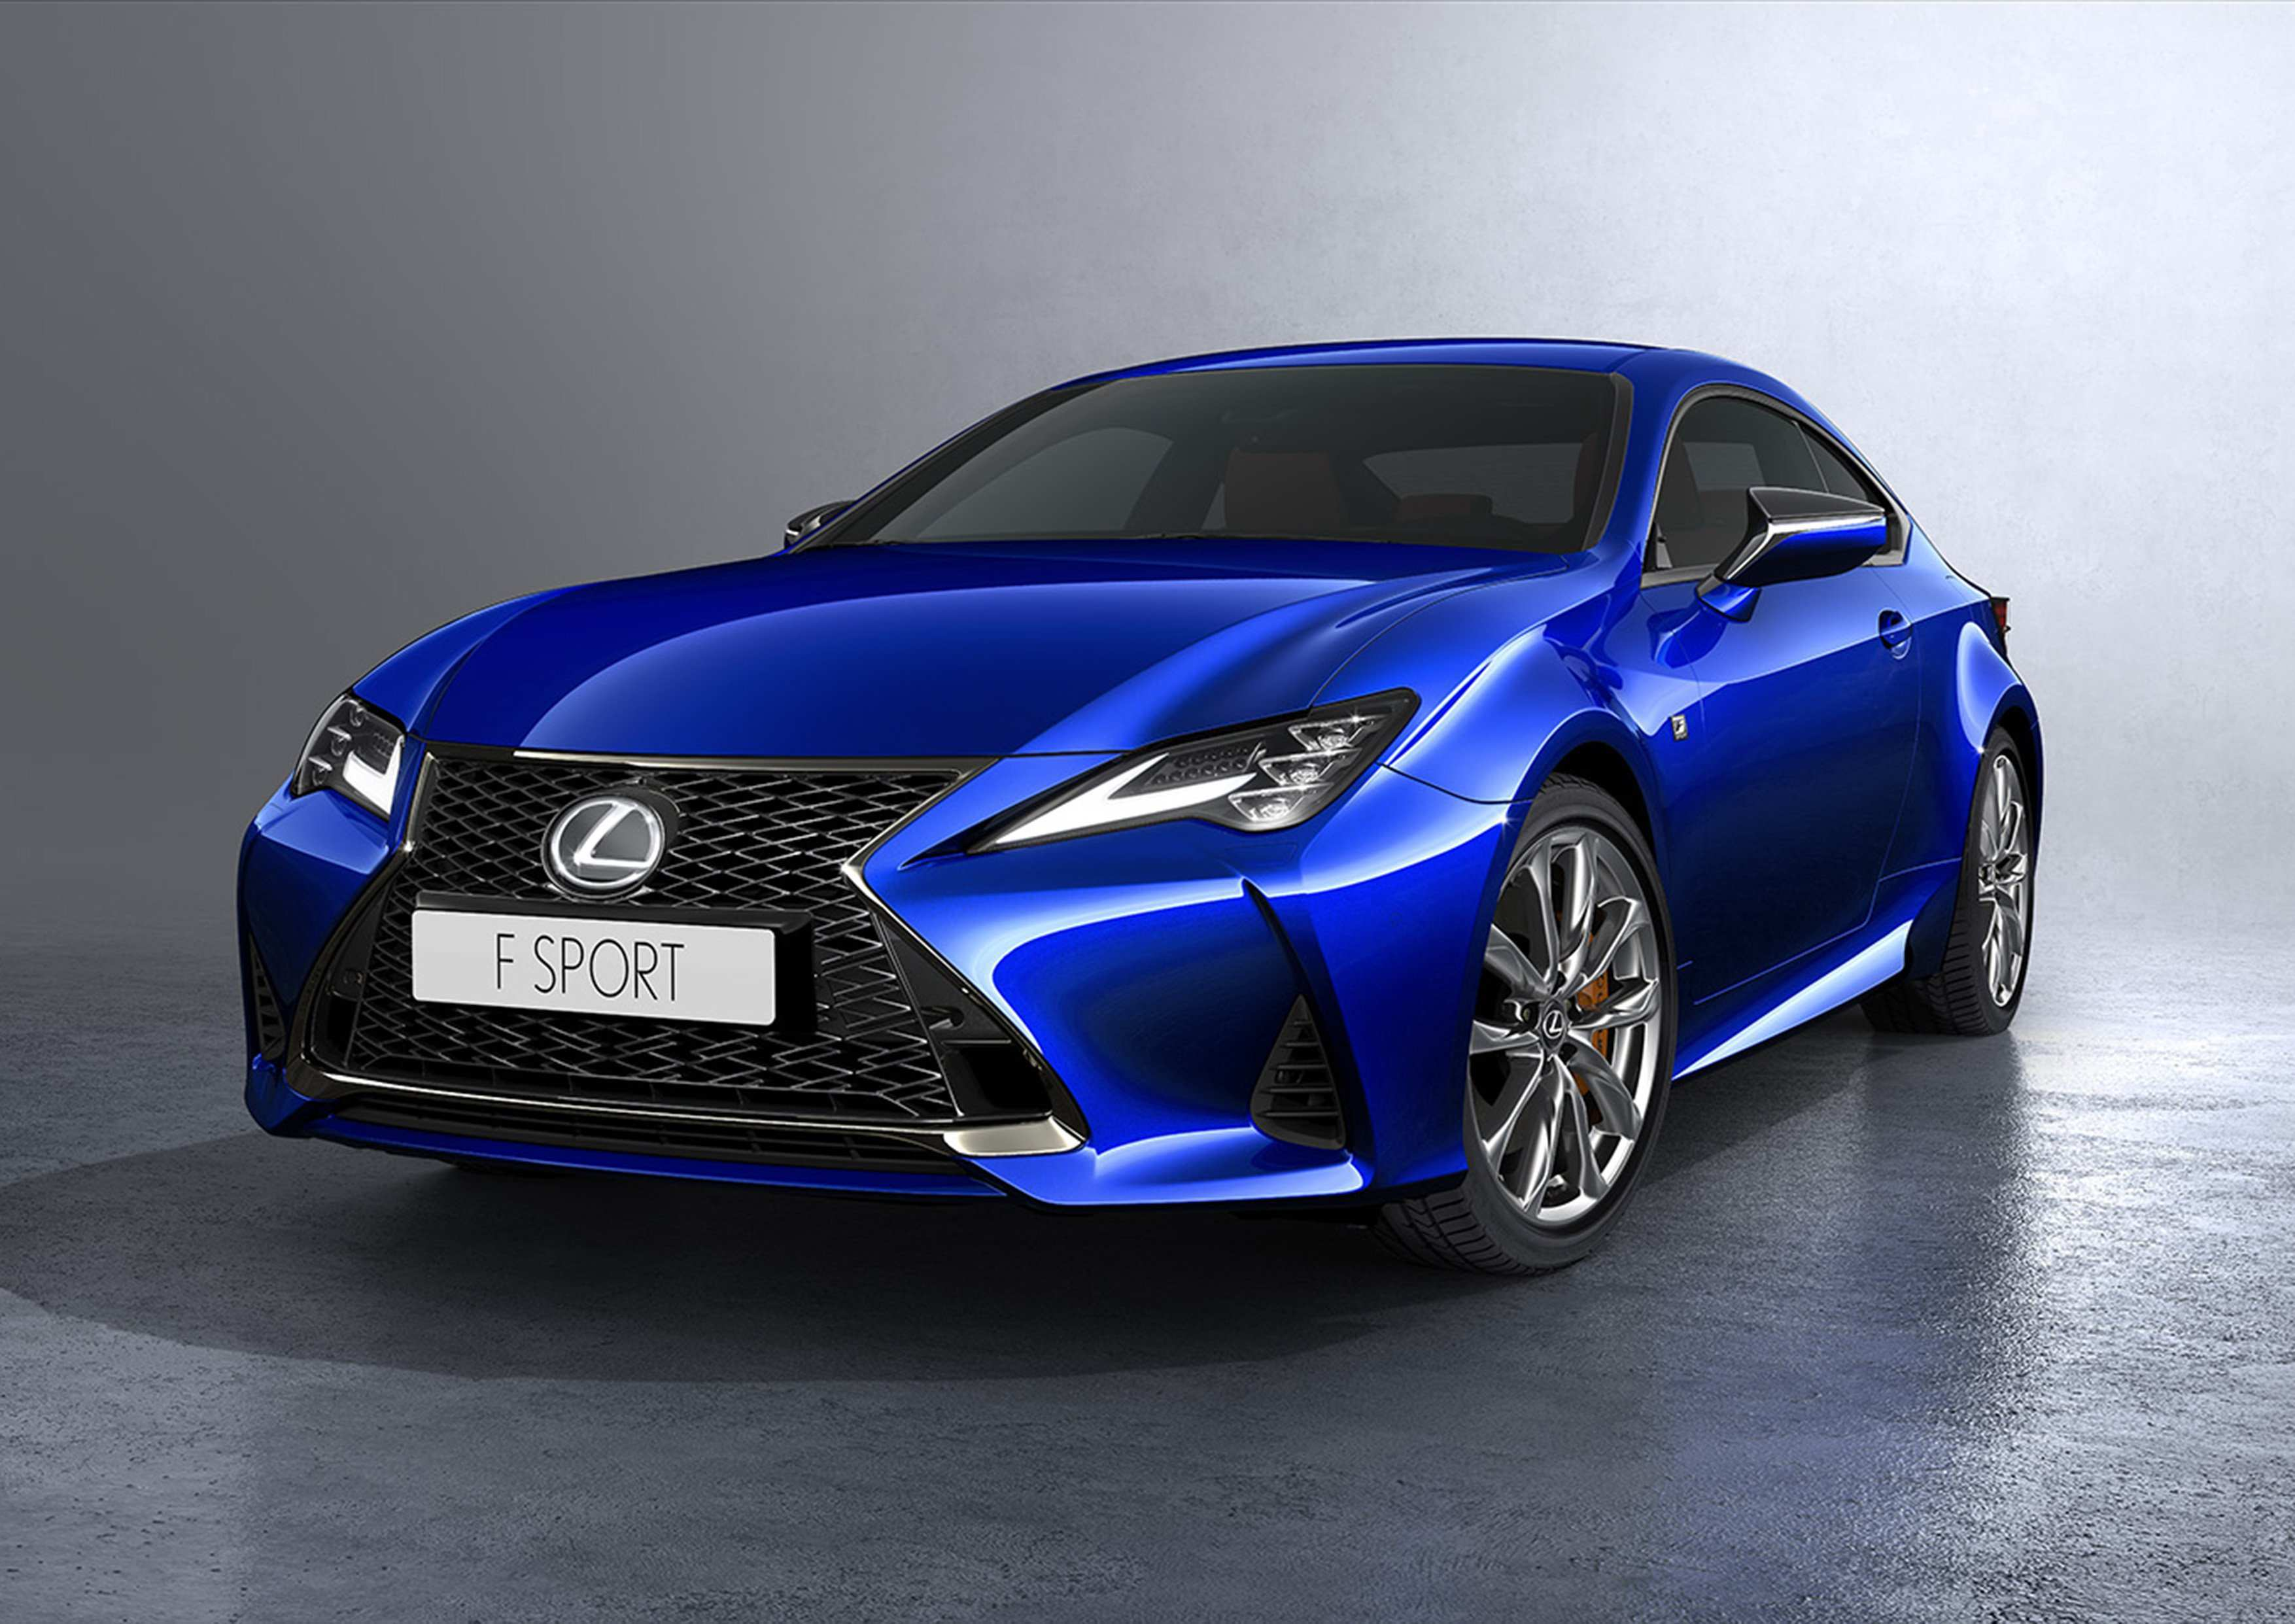 93 Best Review Are The 2020 Lexus Out Yet Configurations for Are The 2020 Lexus Out Yet